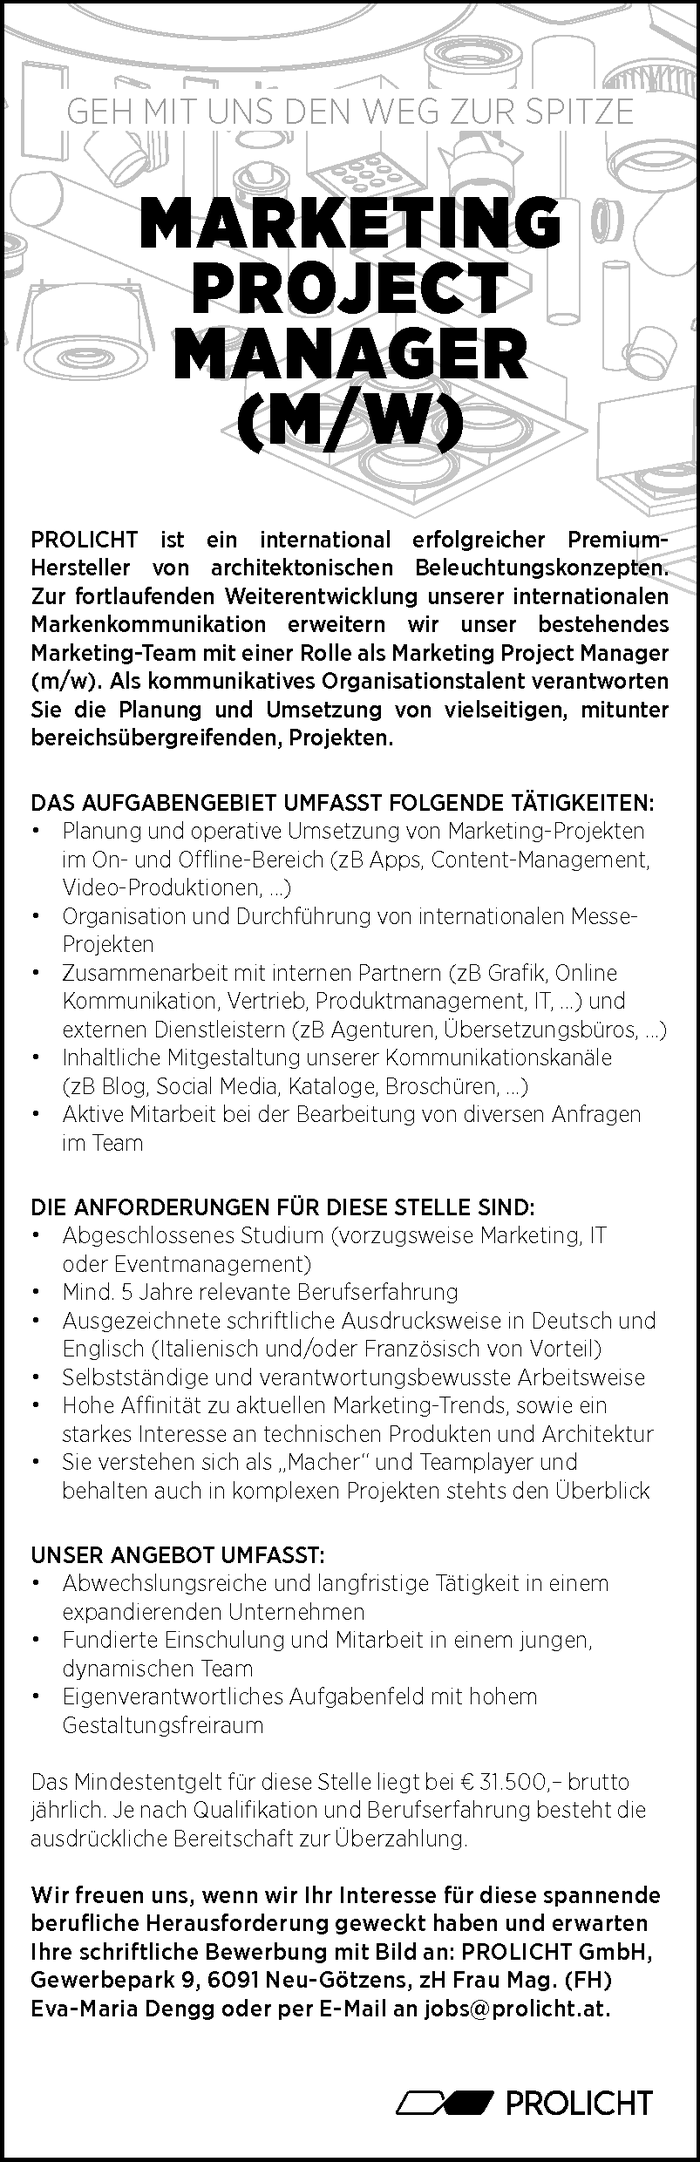 Marketing Projekt Manager (m/w)